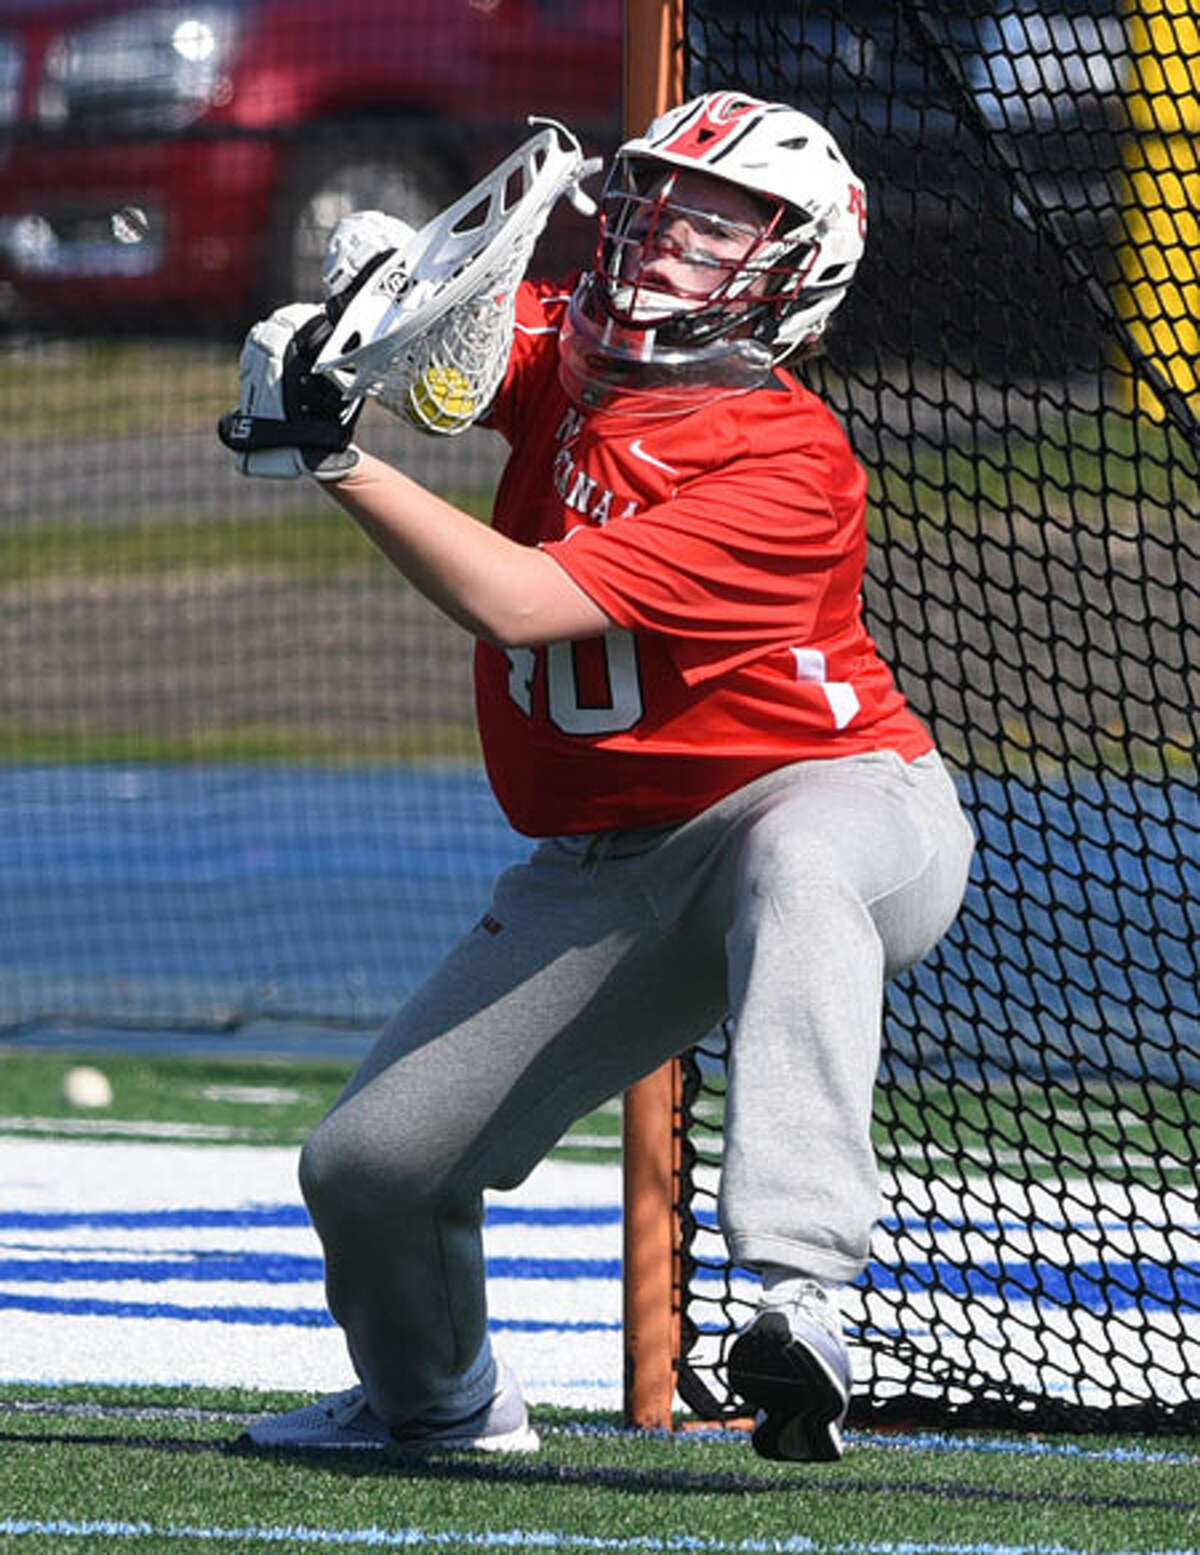 New Canaan goalie Caroline O'Dea makes one of her eight saves against the Blue Wave attack. - Dave Stewart photo